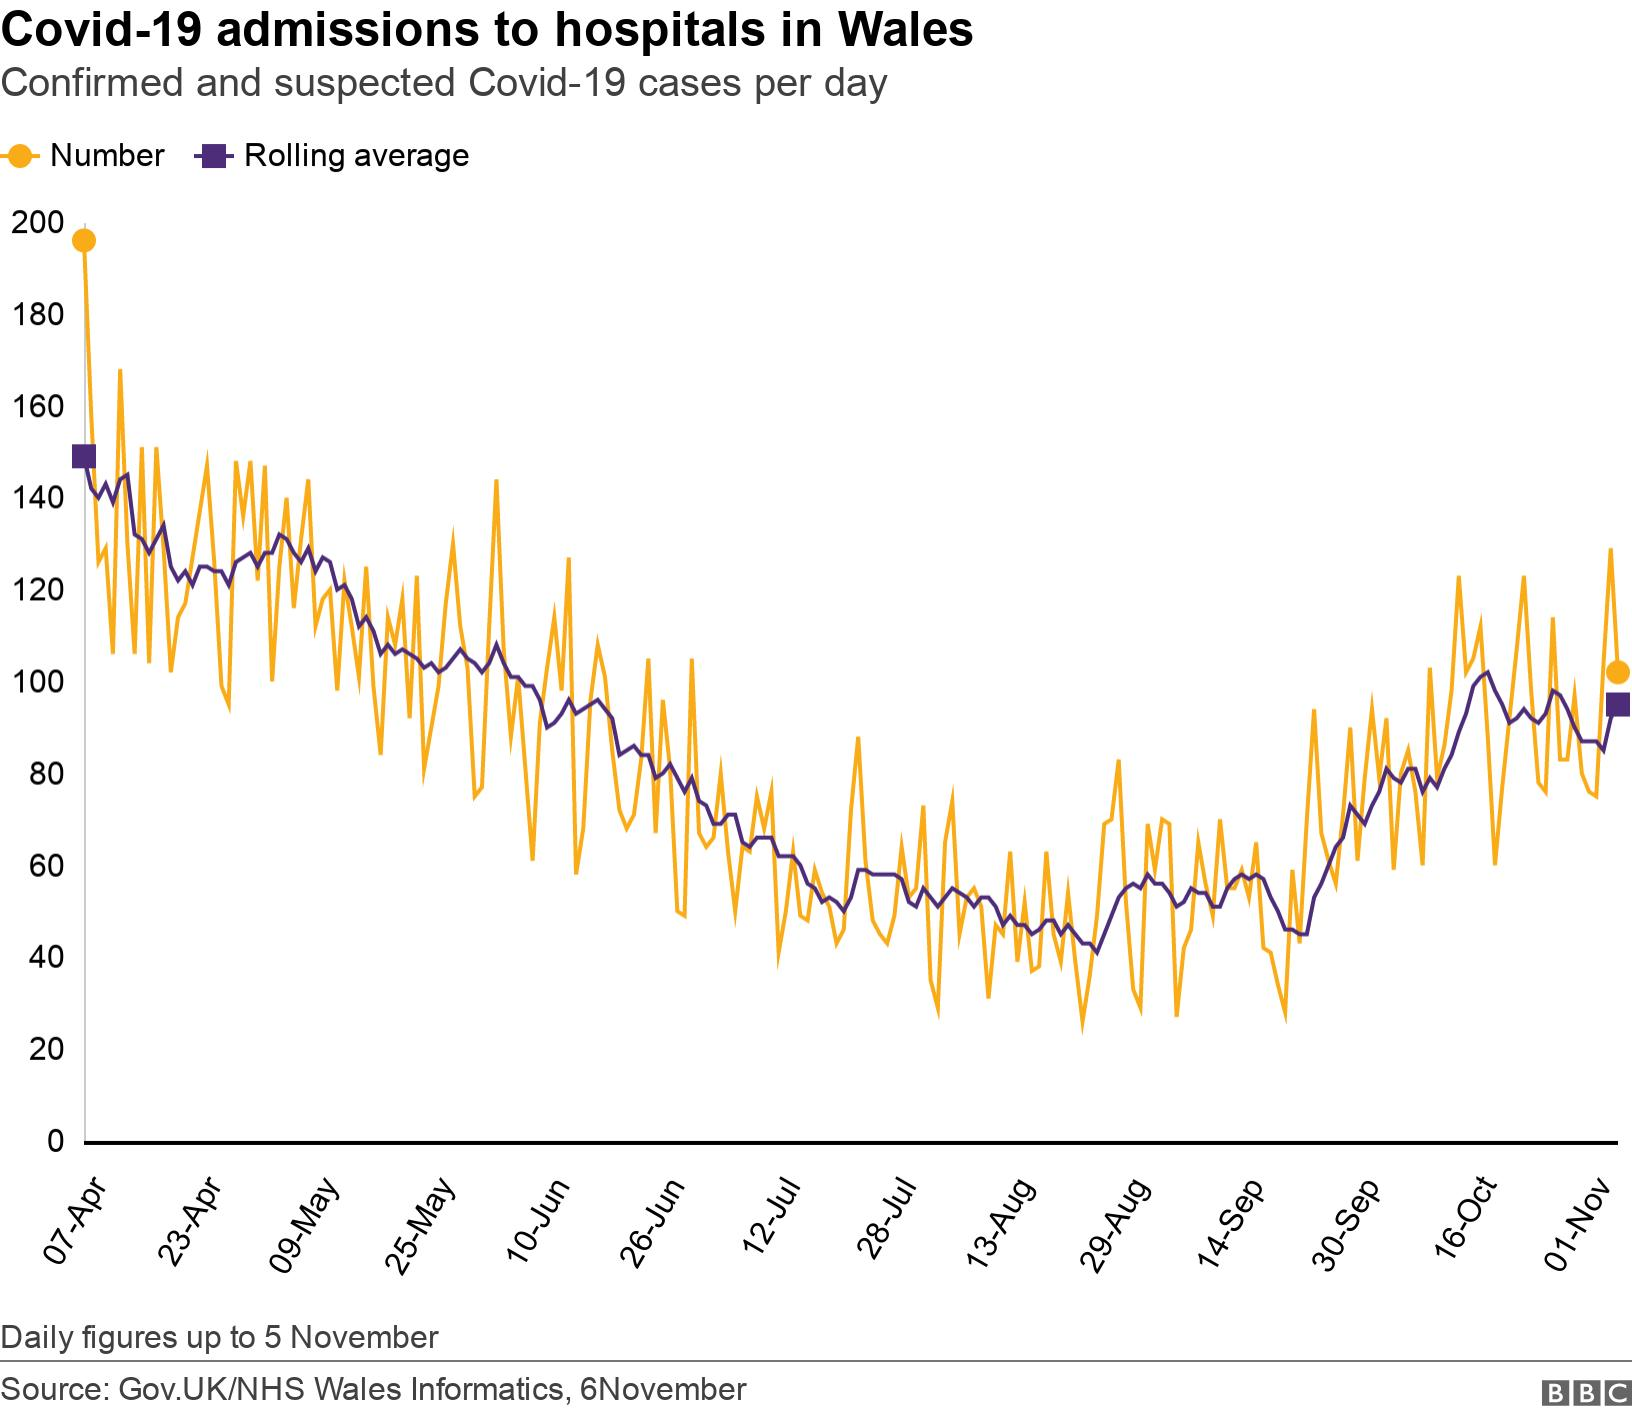 Covid-19 admissions to hospitals in Wales. Confirmed and suspected Covid-19 cases per day.  Daily figures up to 5 November.